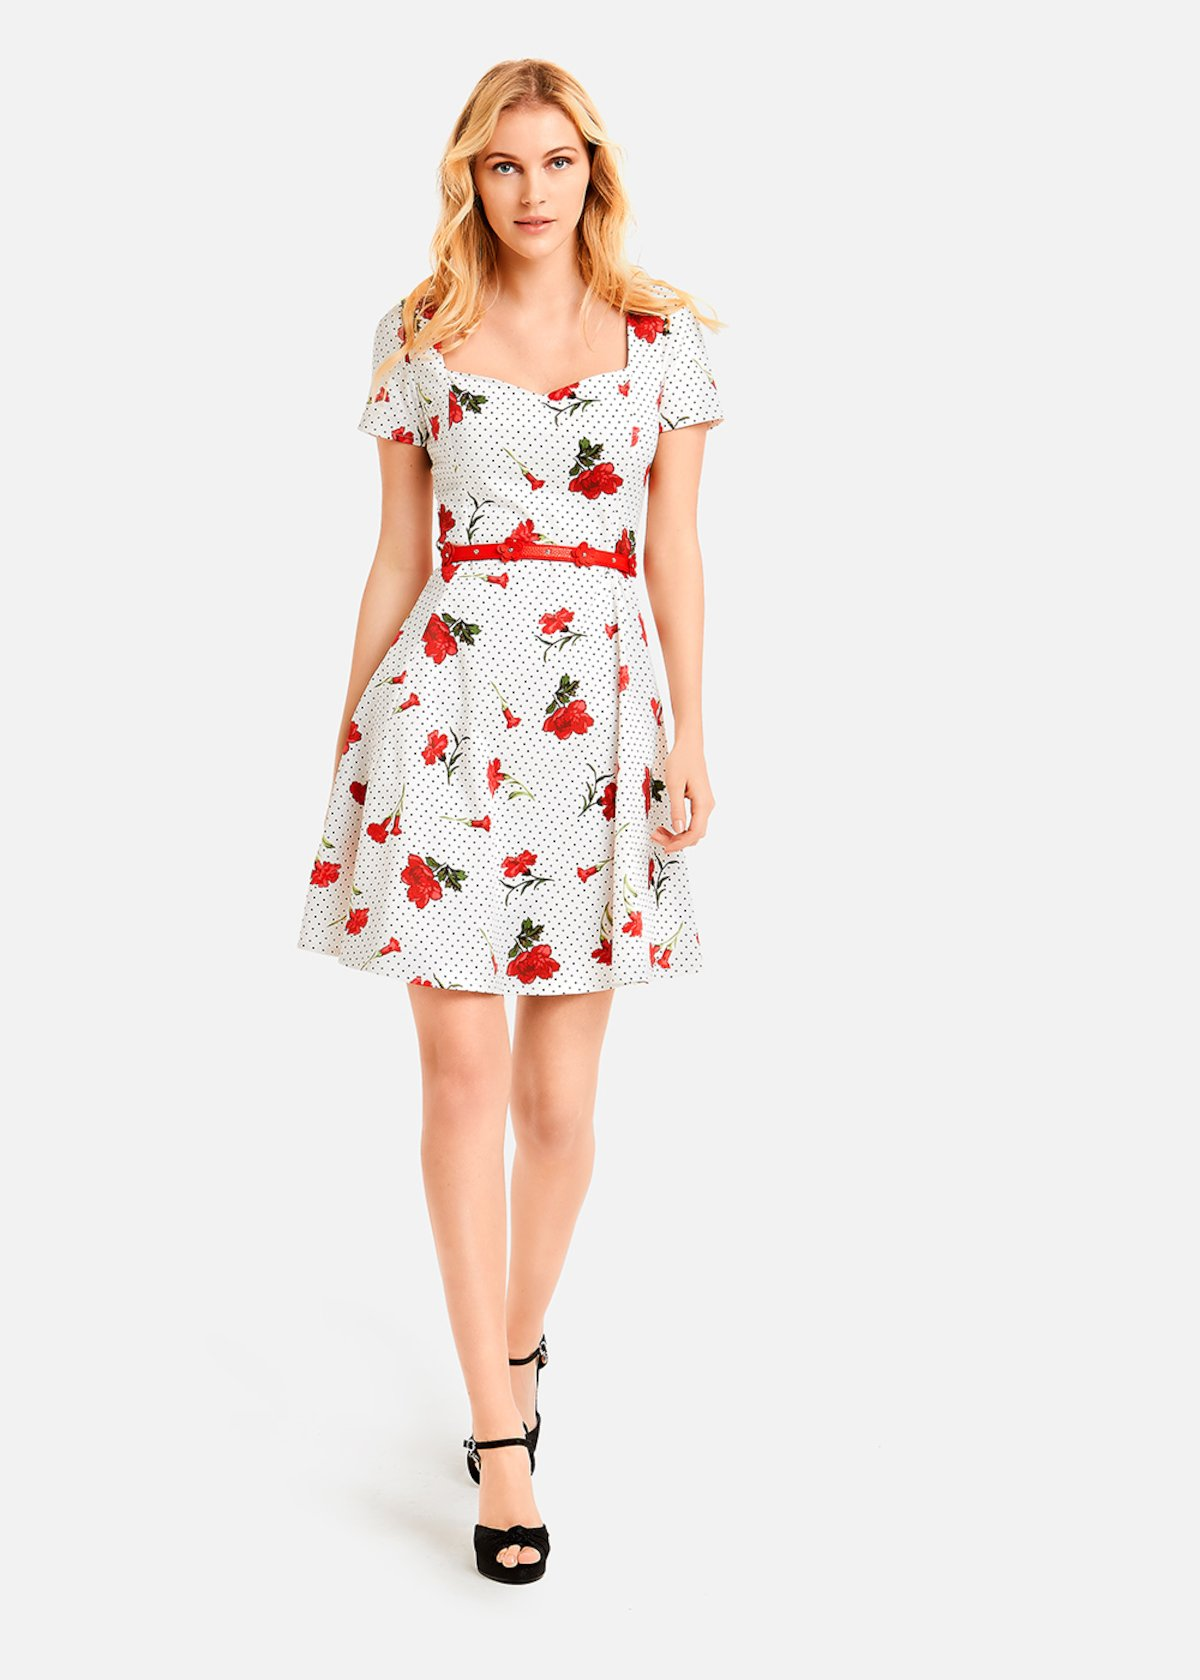 Agnese dress carnations and polka dots pattern - White / Rouge Fantasia